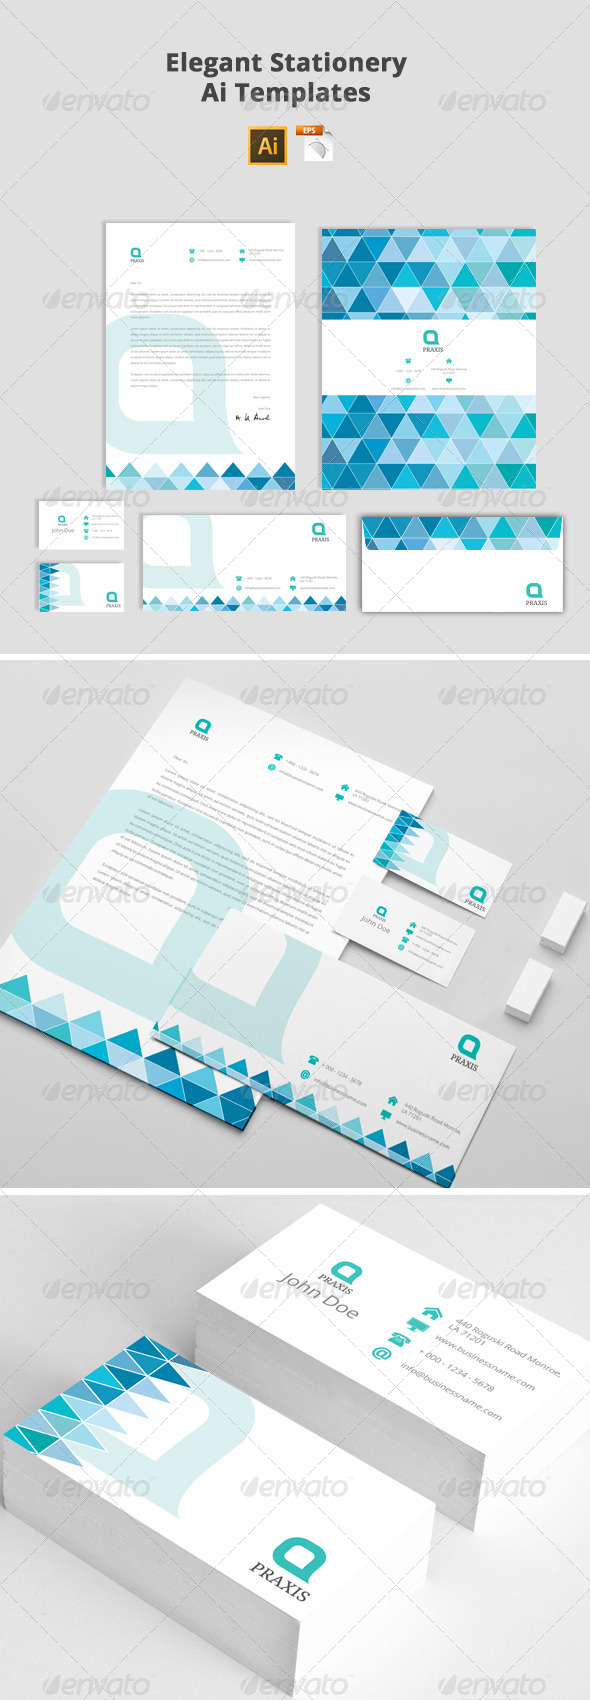 GraphicRiver Elegant Stationery Ai Templates 7457424